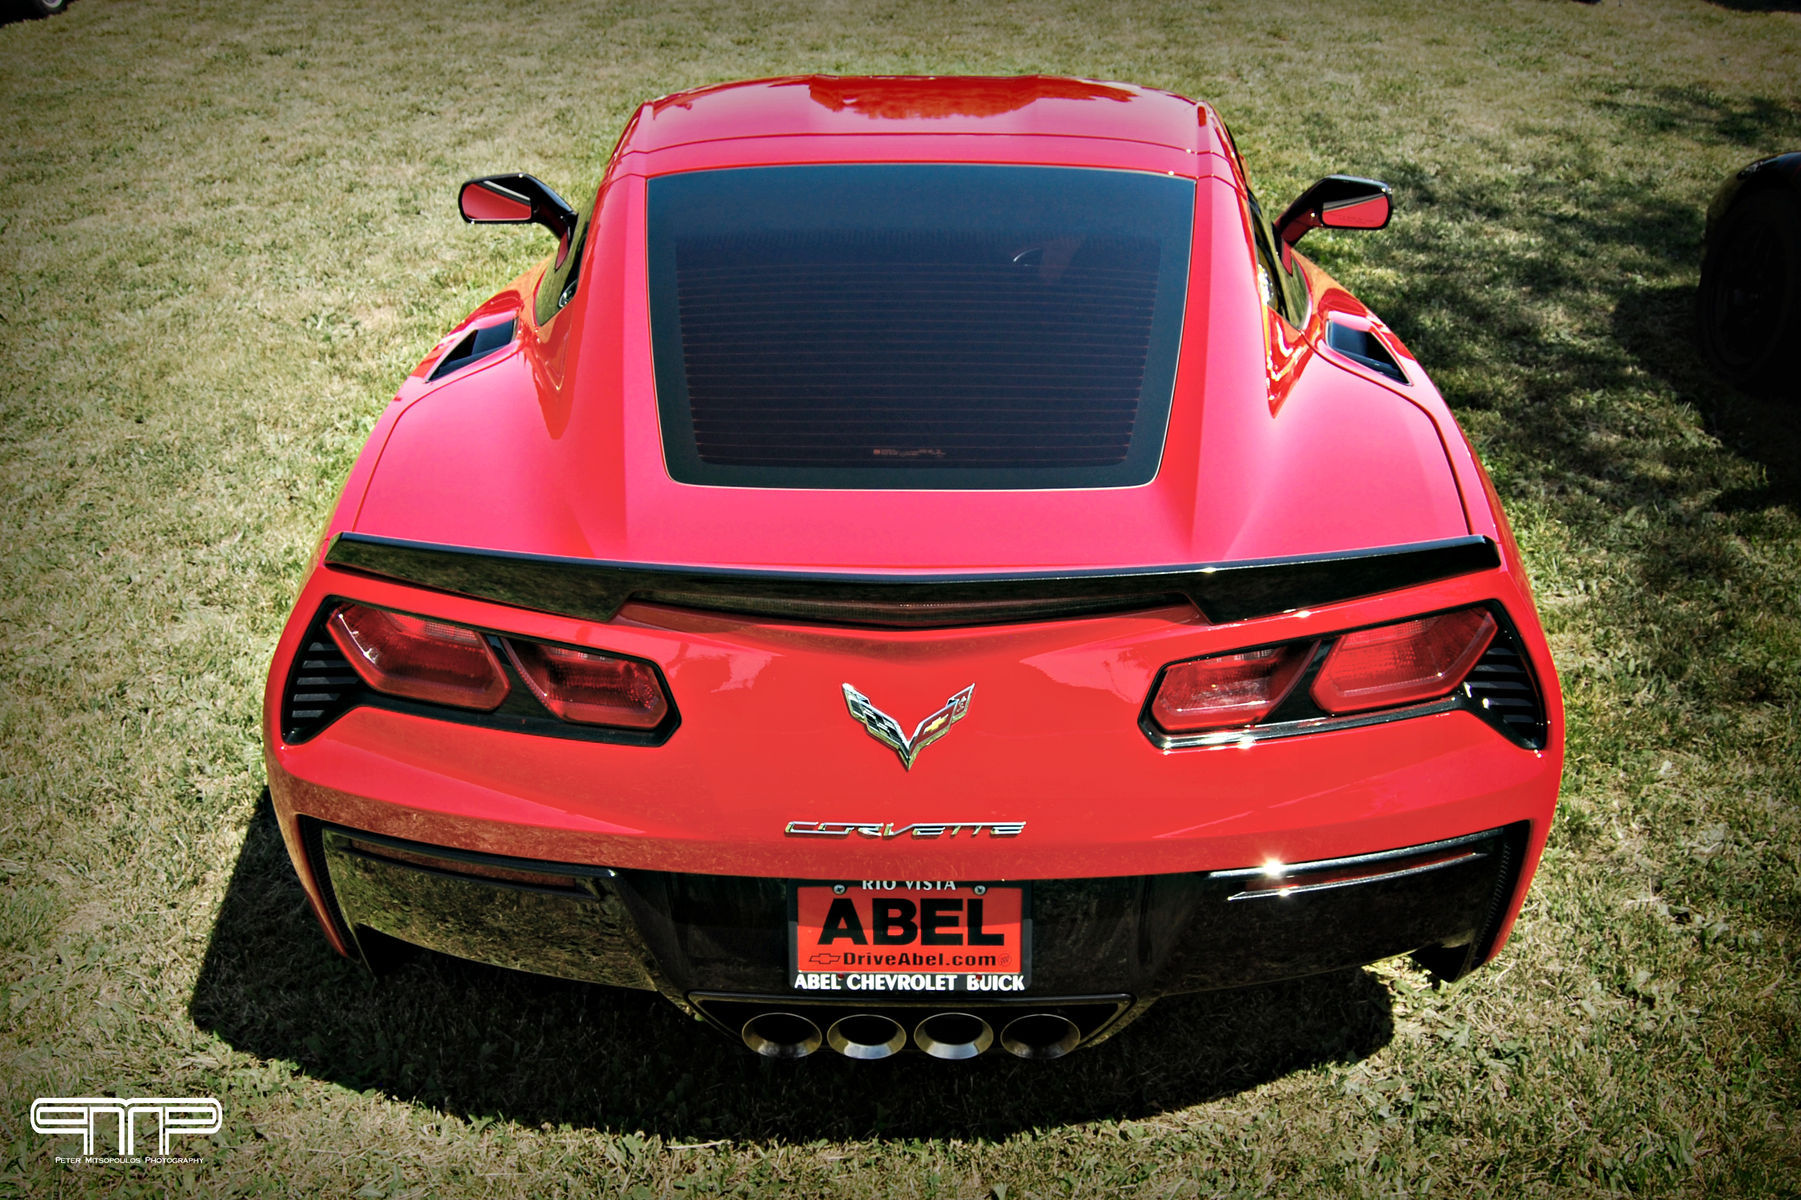 Chevrolet Corvette Stingray | Chevrolet Corvette Stingray